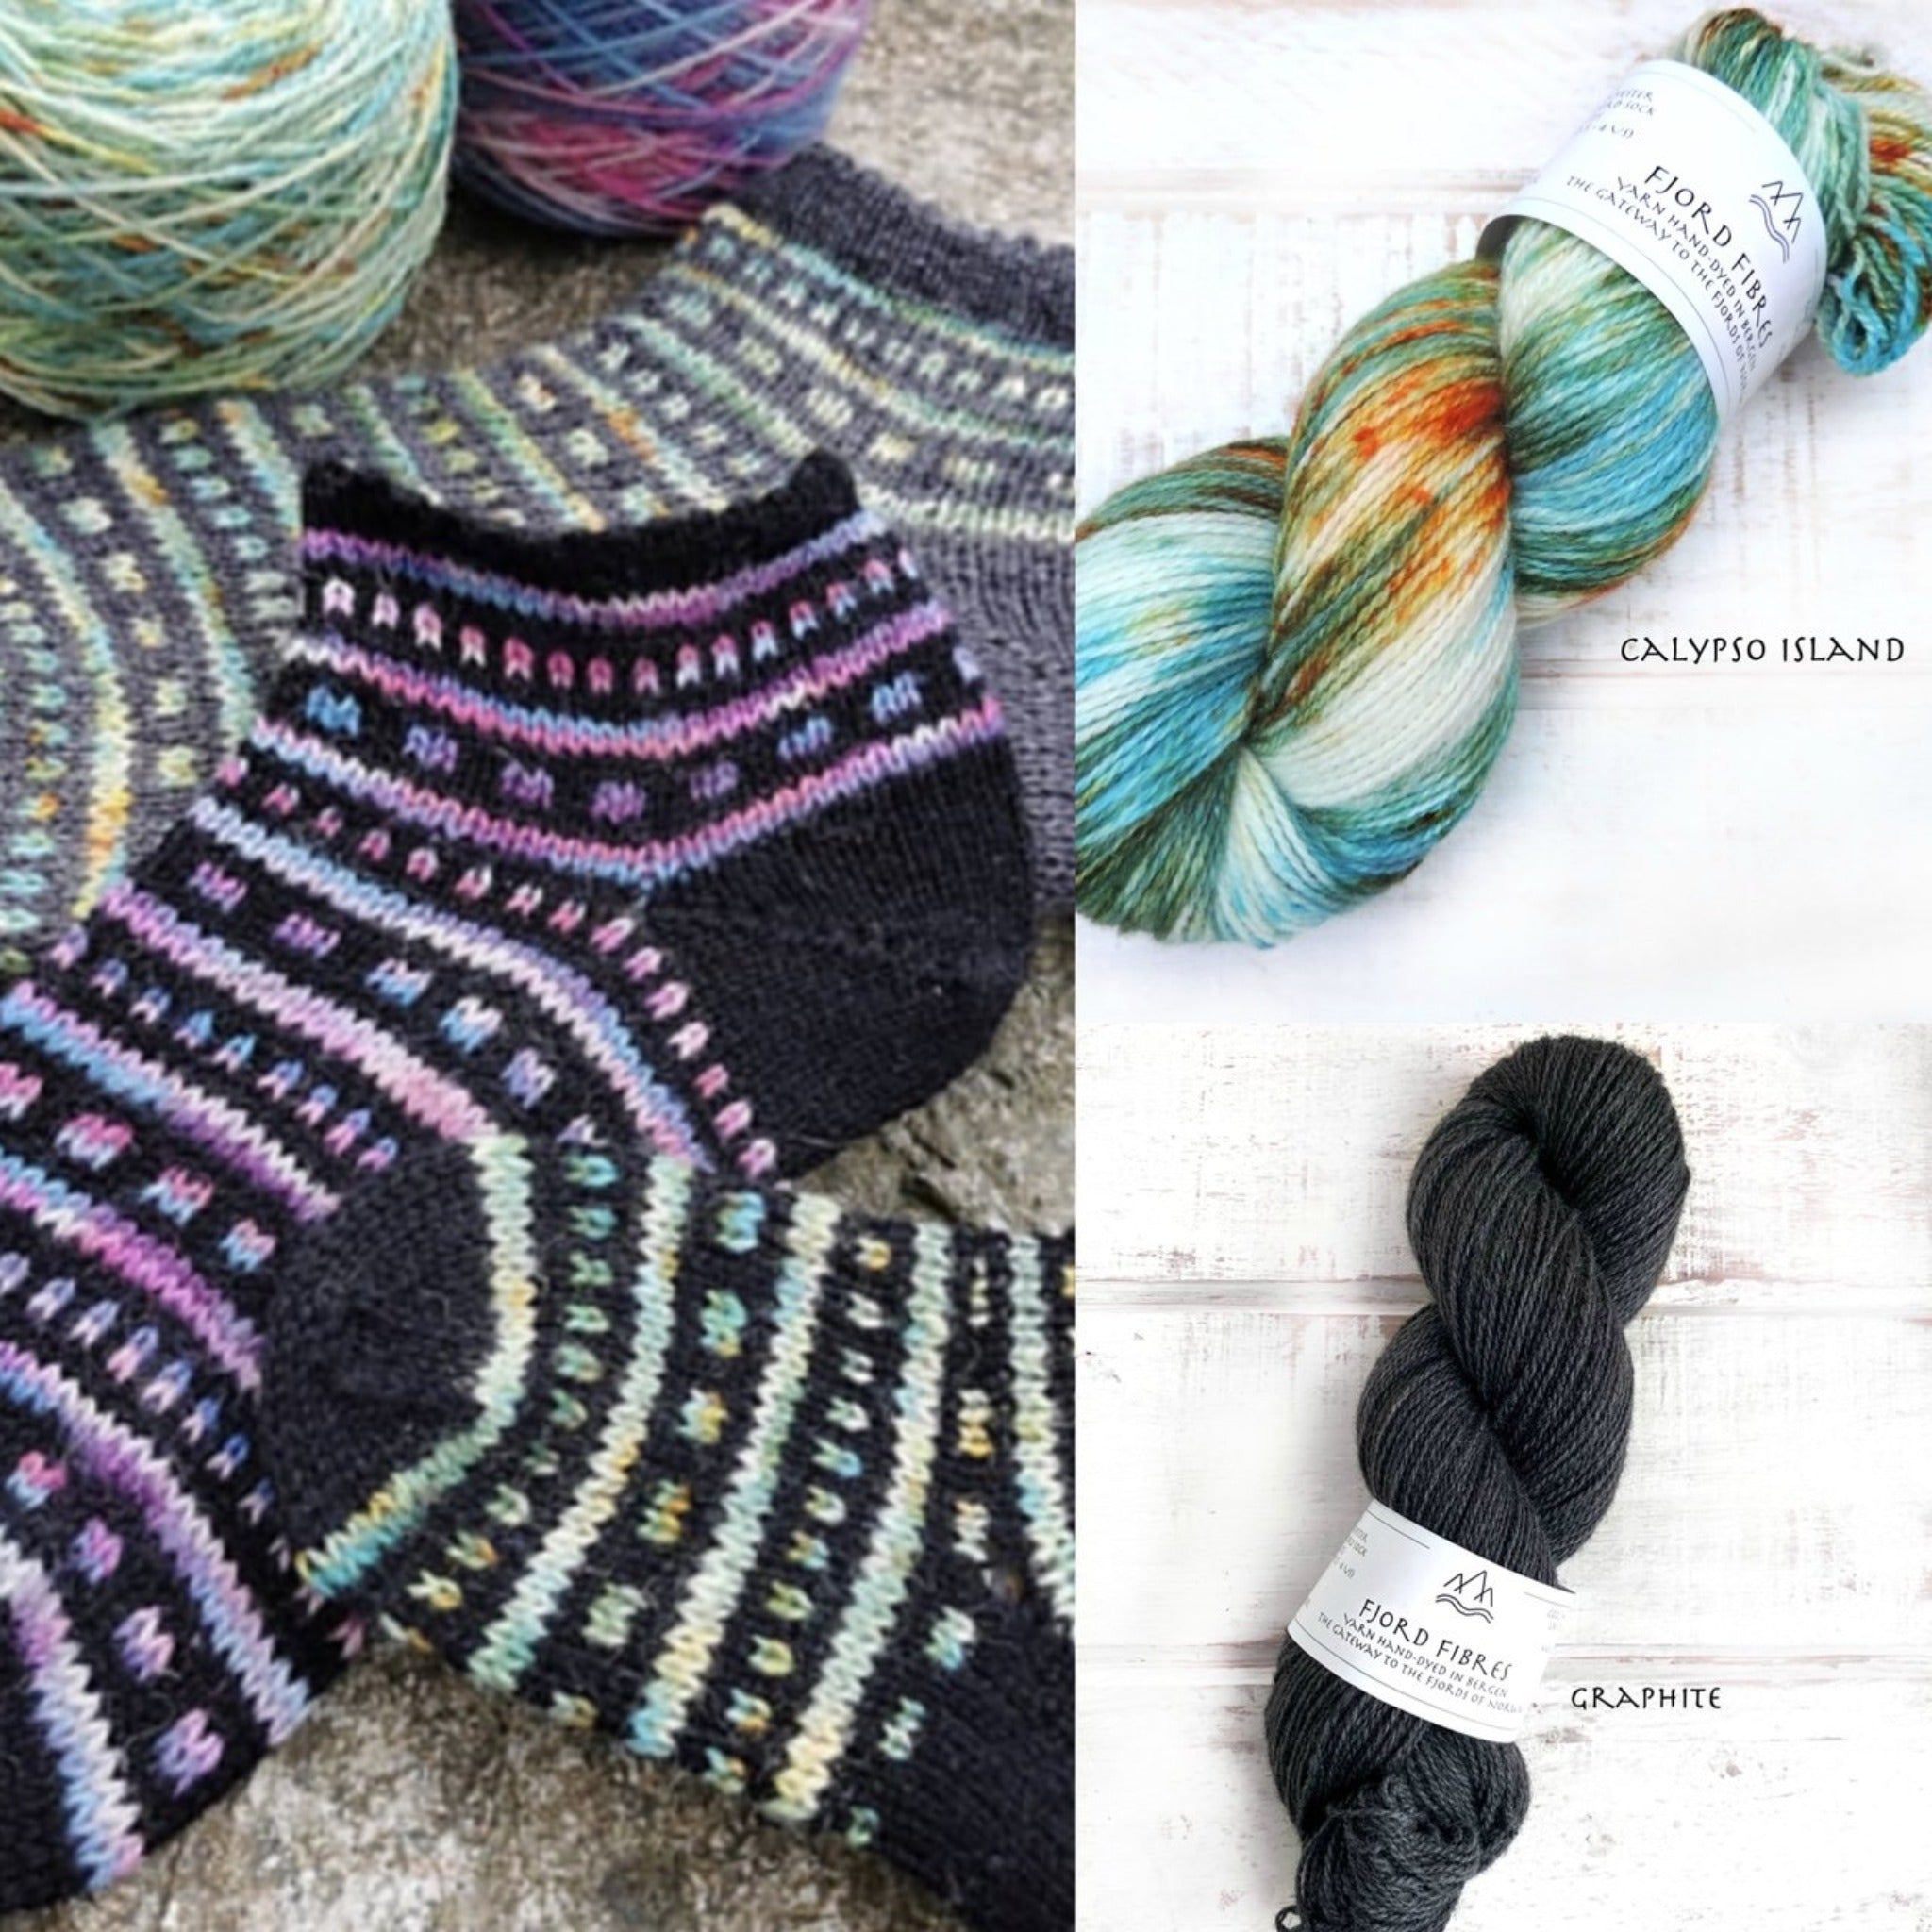 All that Jazz Socks Kit - Calypso Island/Graphite - Yarn and Printed Pattern in English/Norwegian - Trollfjord Sock - Hand Dyed Yarn